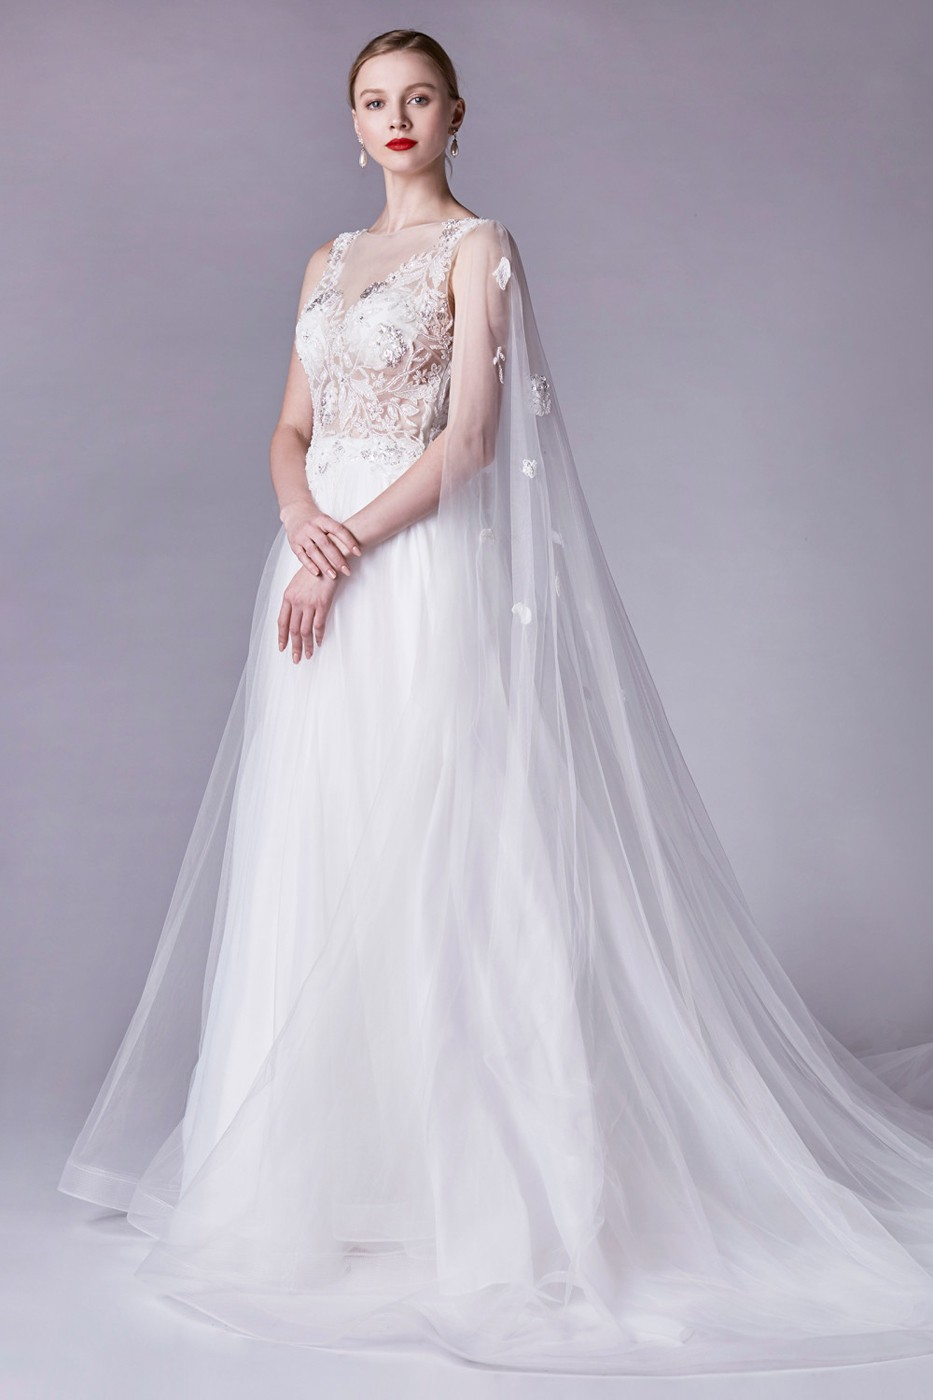 Andrea And Leo A0245 Sheer Bodice With Cape Wedding Gown